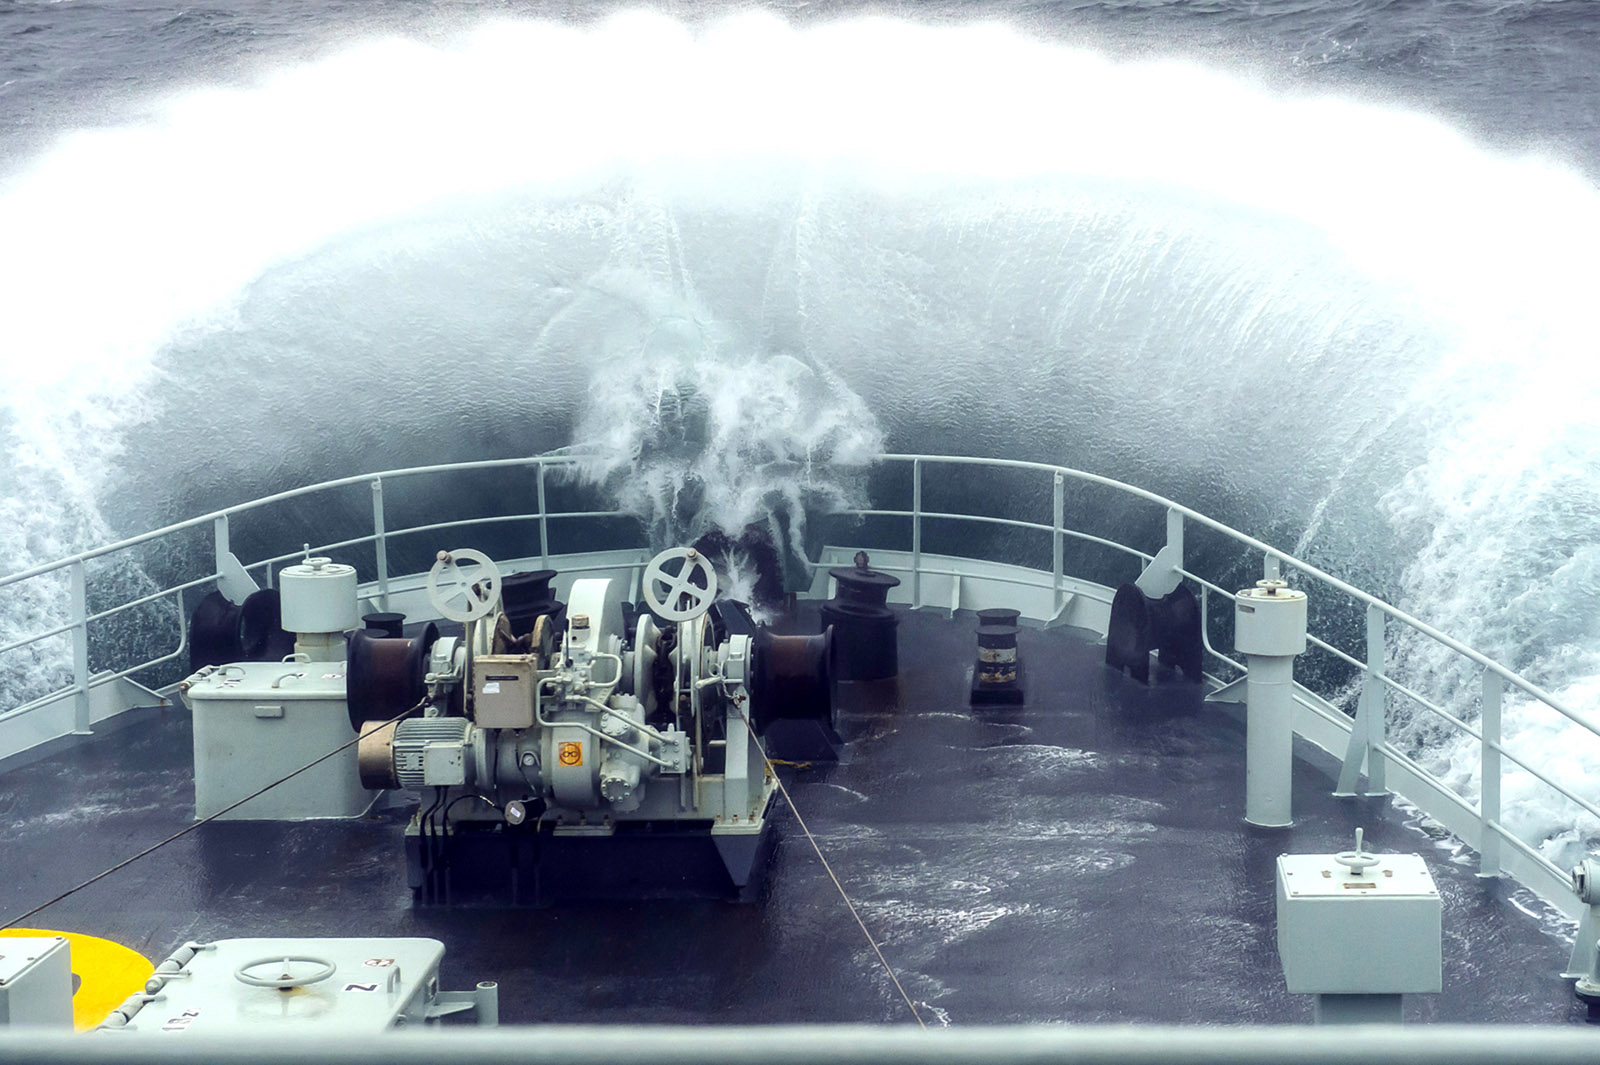 Water crashes over the fo'c'sle of HMCS Edmonton.